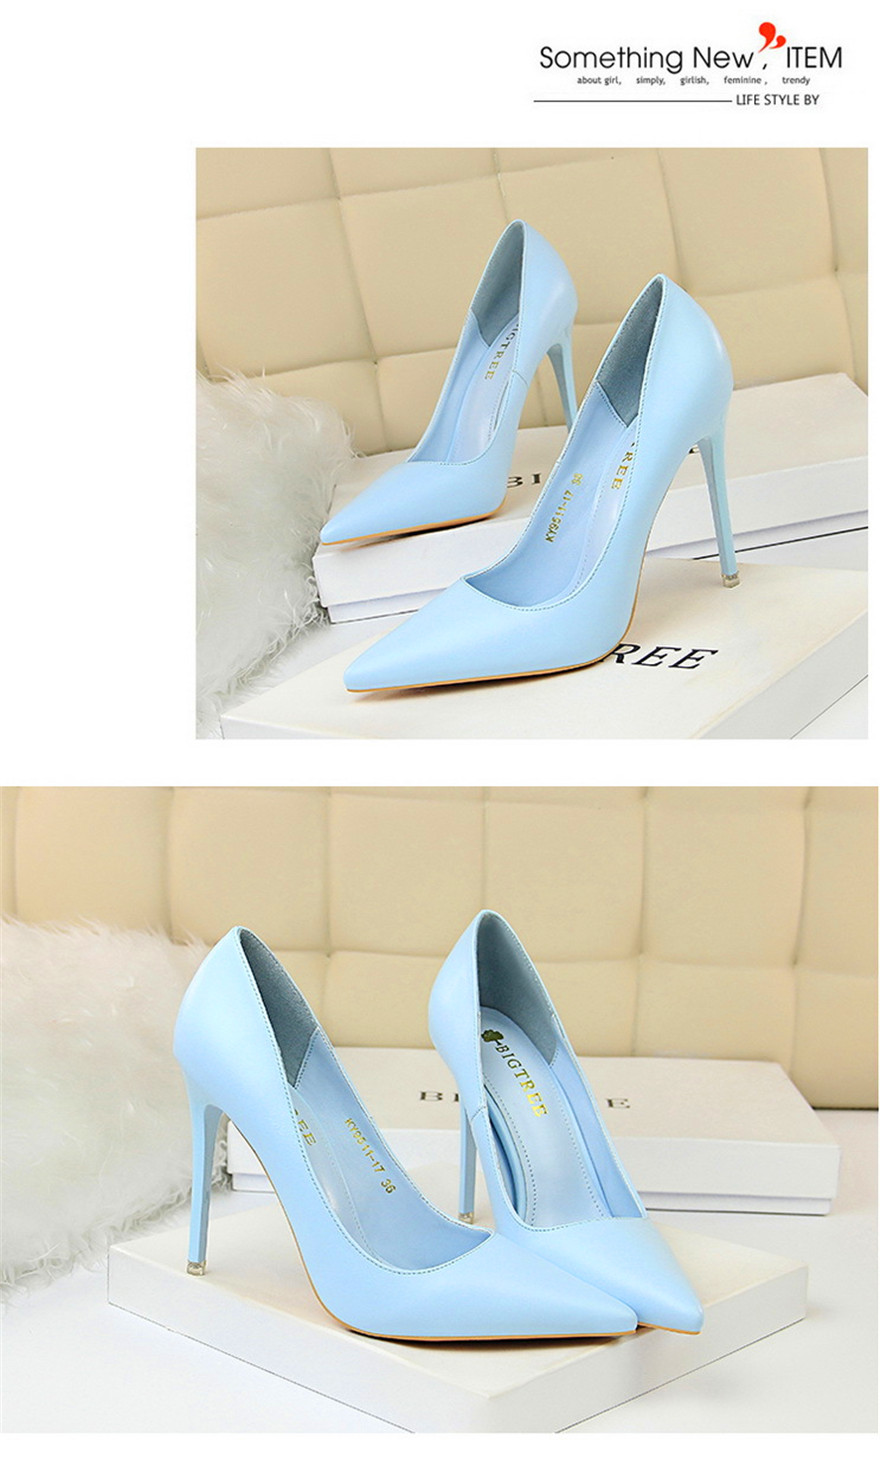 BIGTREE Soft Leather Shallow Fashion Women's High Heels Shoes Candy Colors Pointed Toe Women Pumps Show Thin Female Office Shoe 17